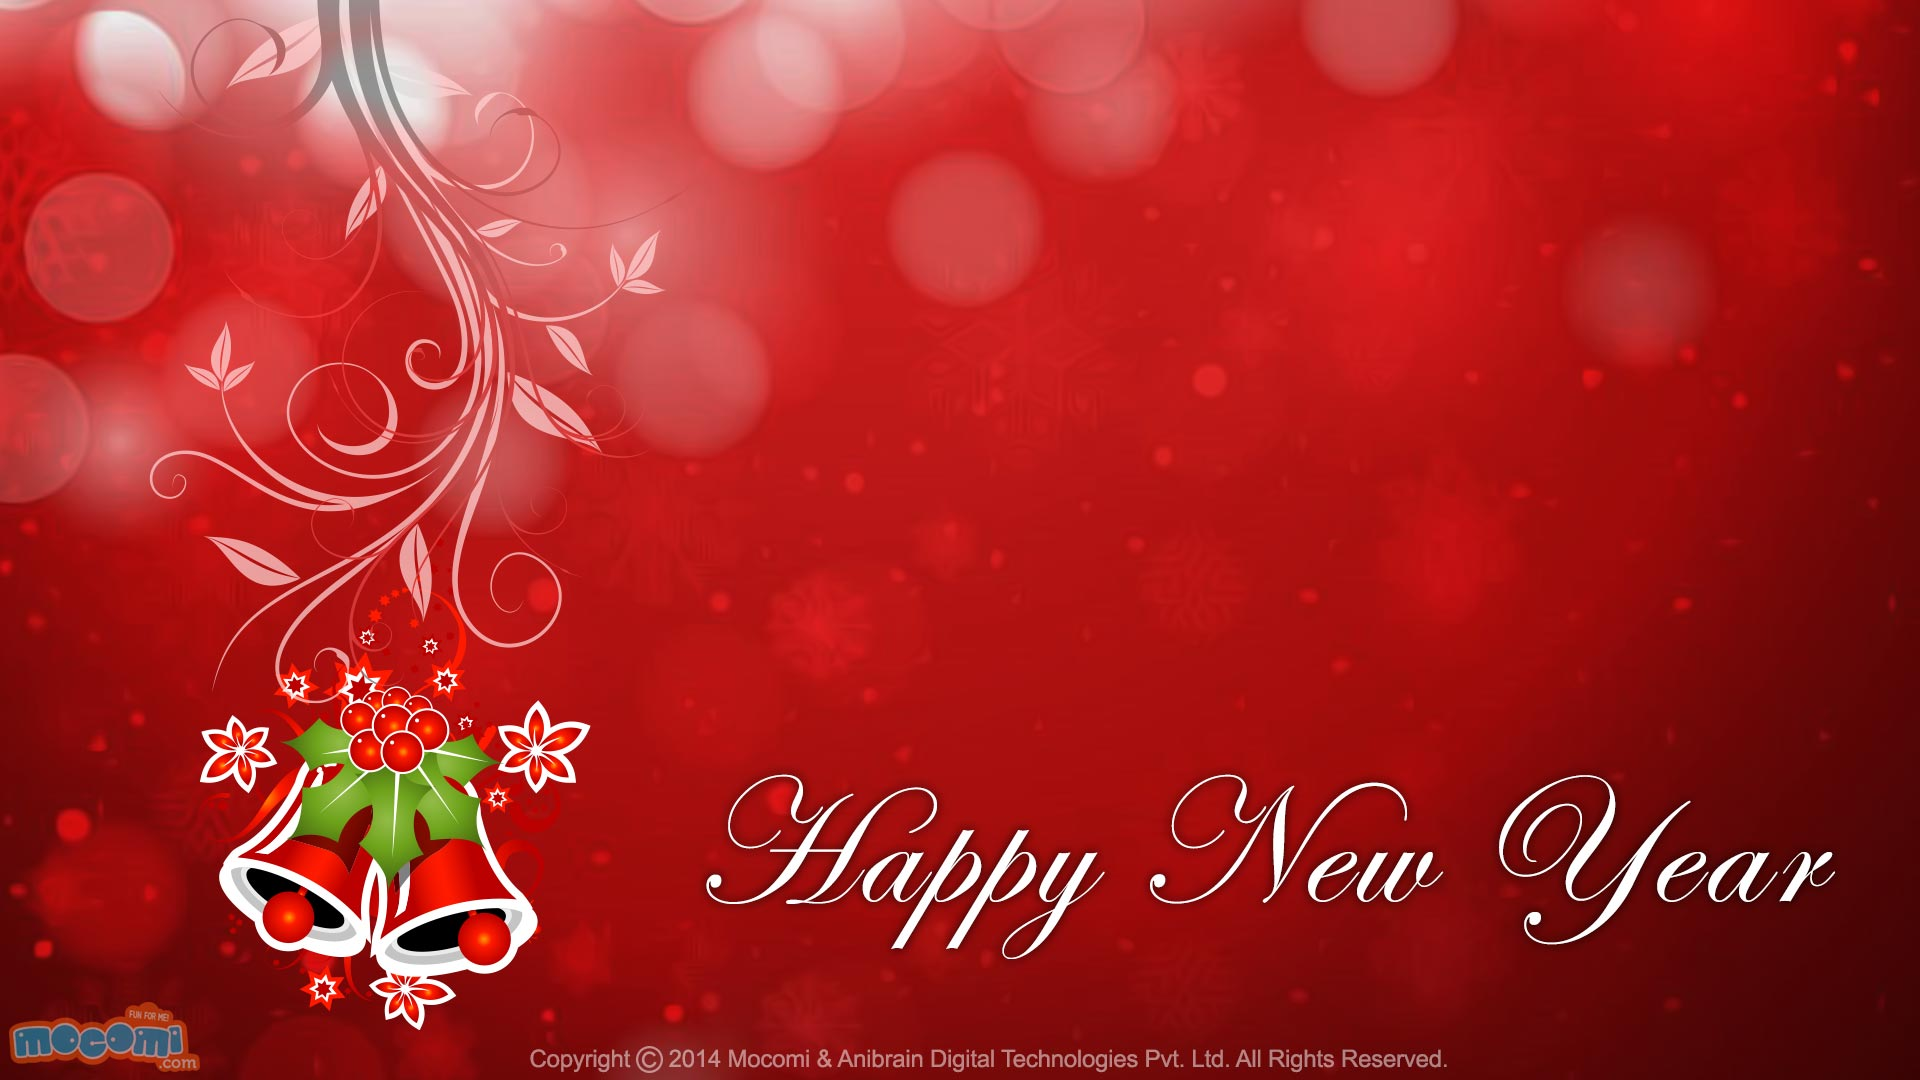 Happy New Year Wallpaper- 13